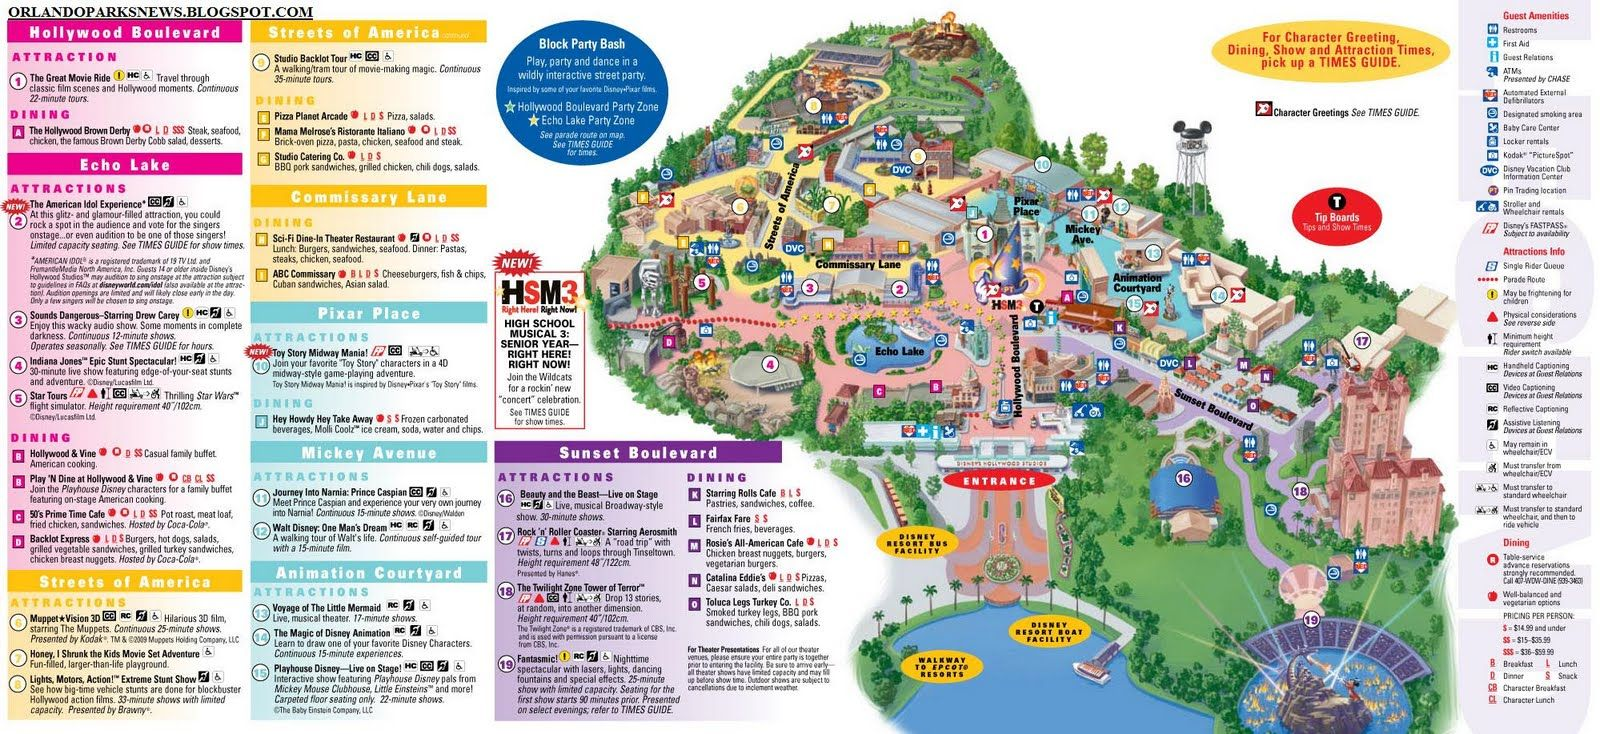 MGM Studios Orlando Theme Park Disney 39 s Hollywood Studios park map Tr